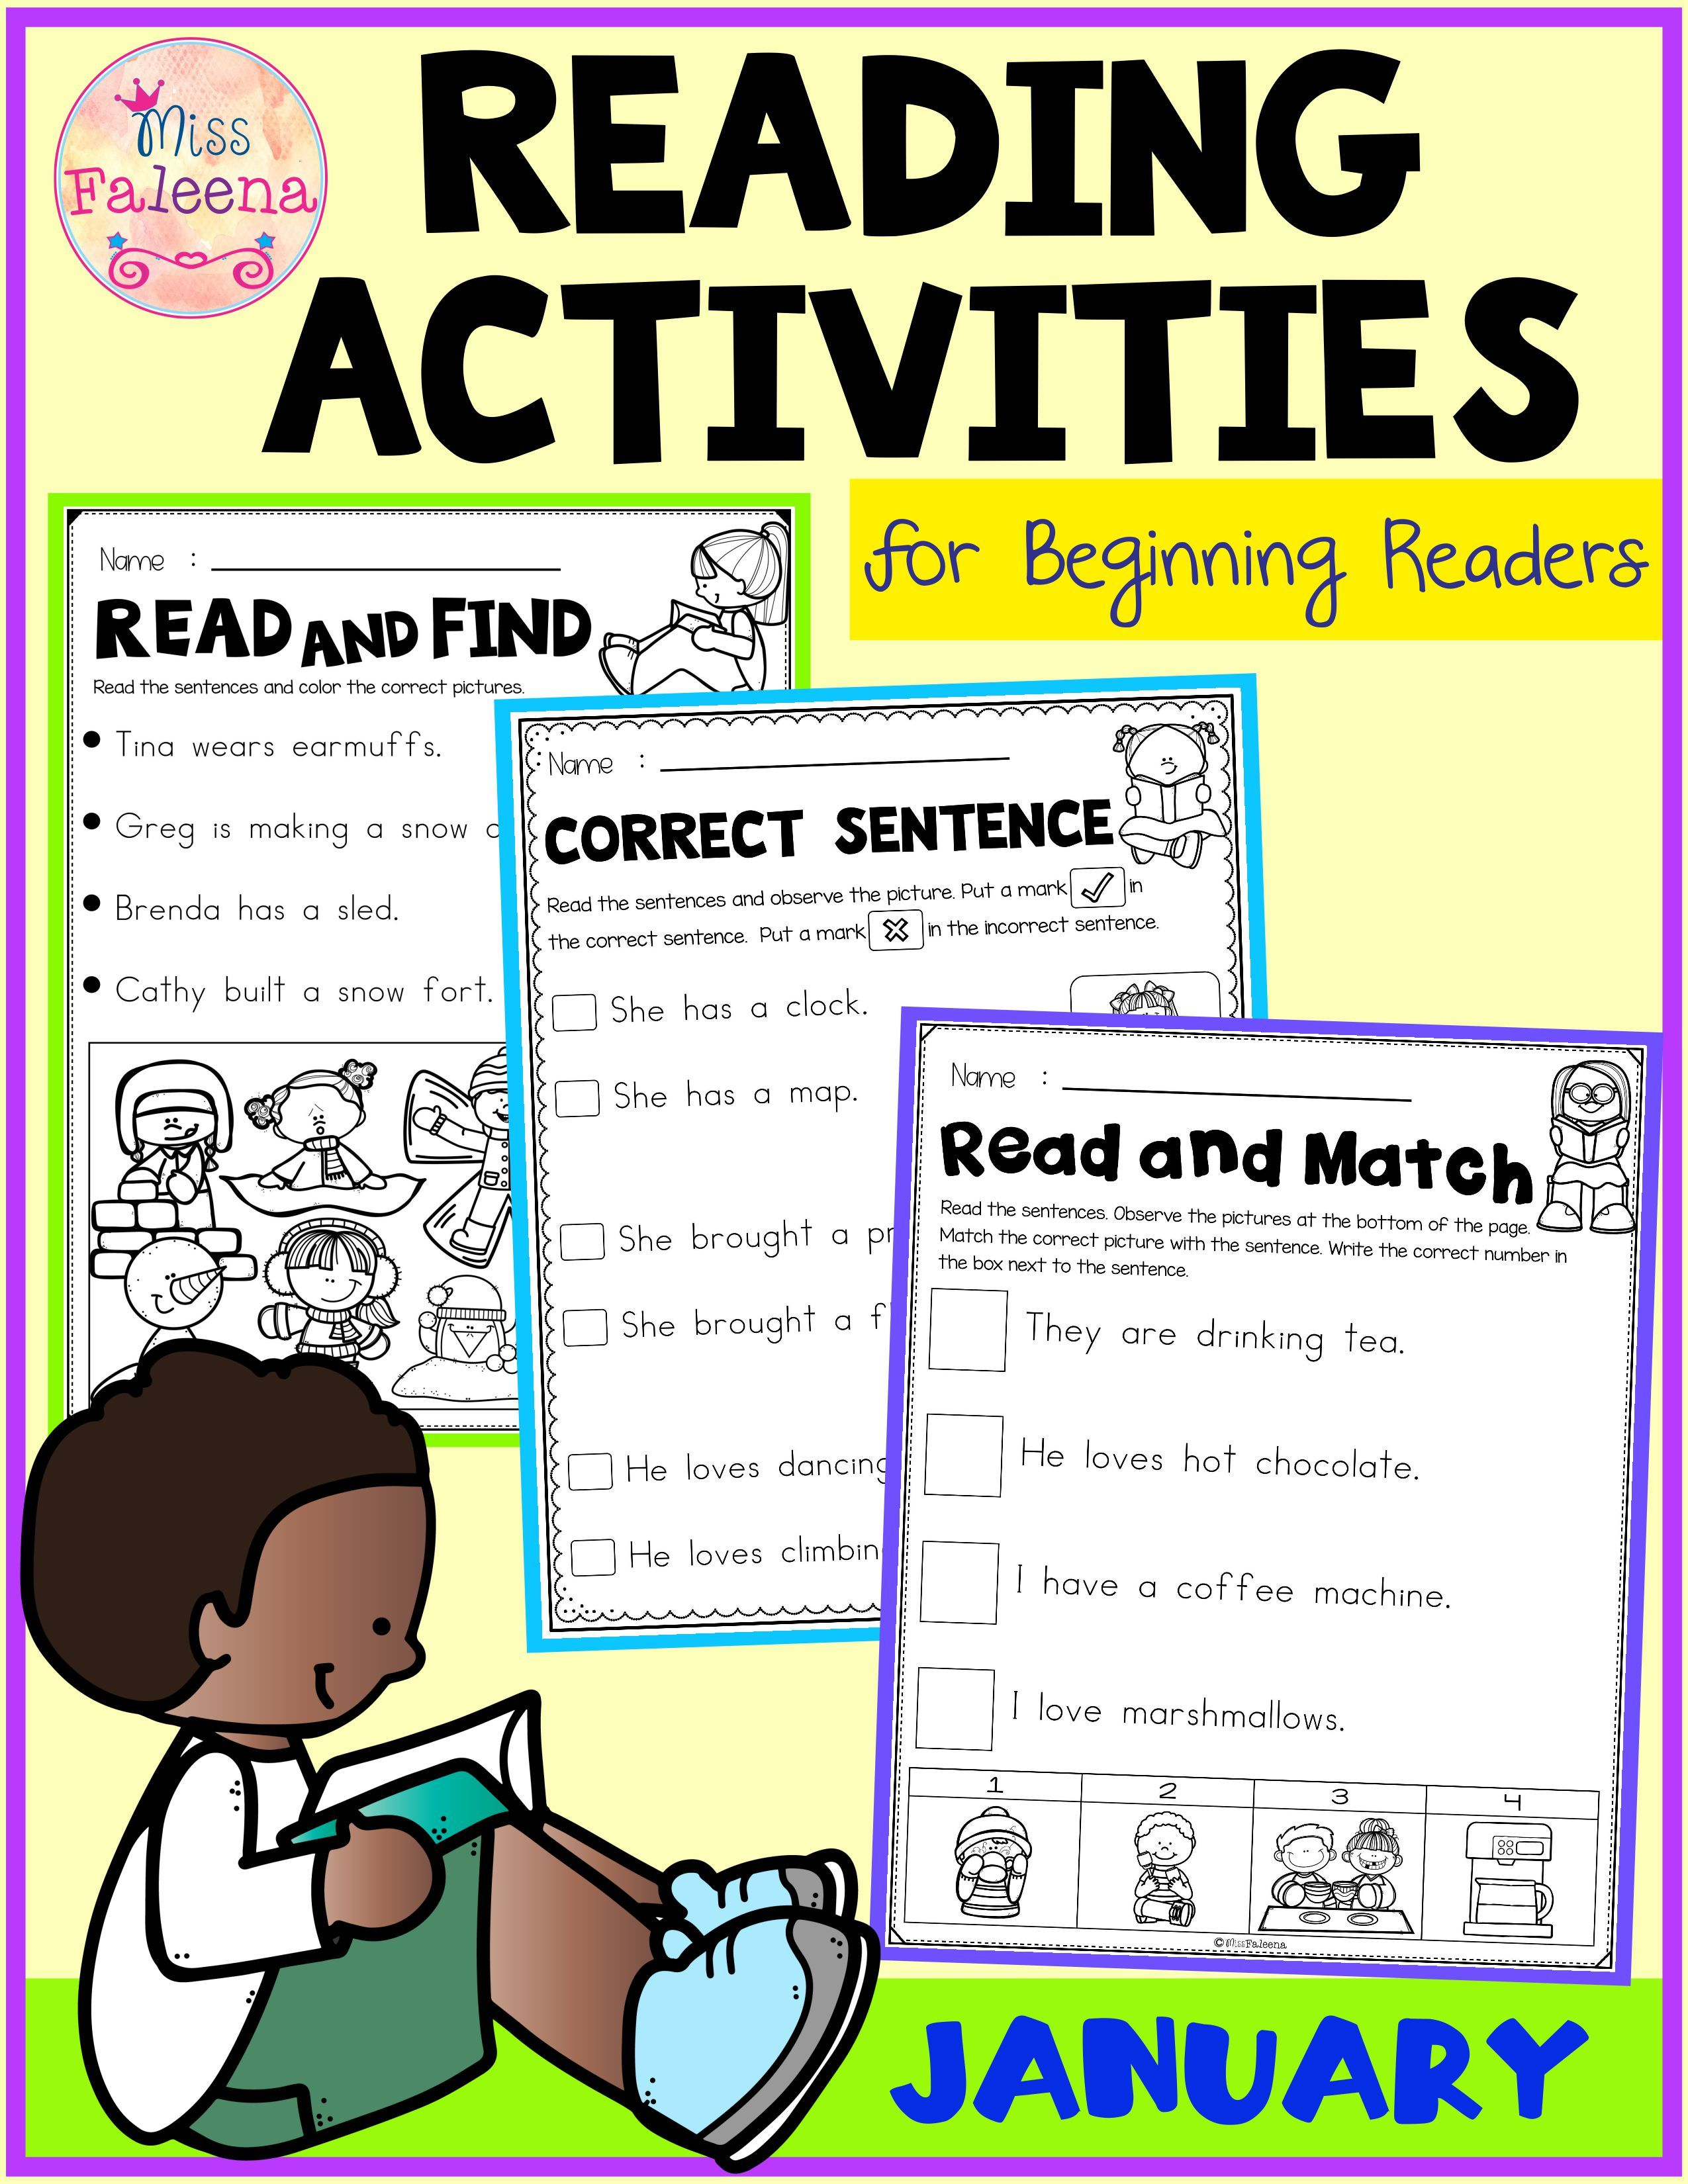 January Reading Activities For Beginning Readers